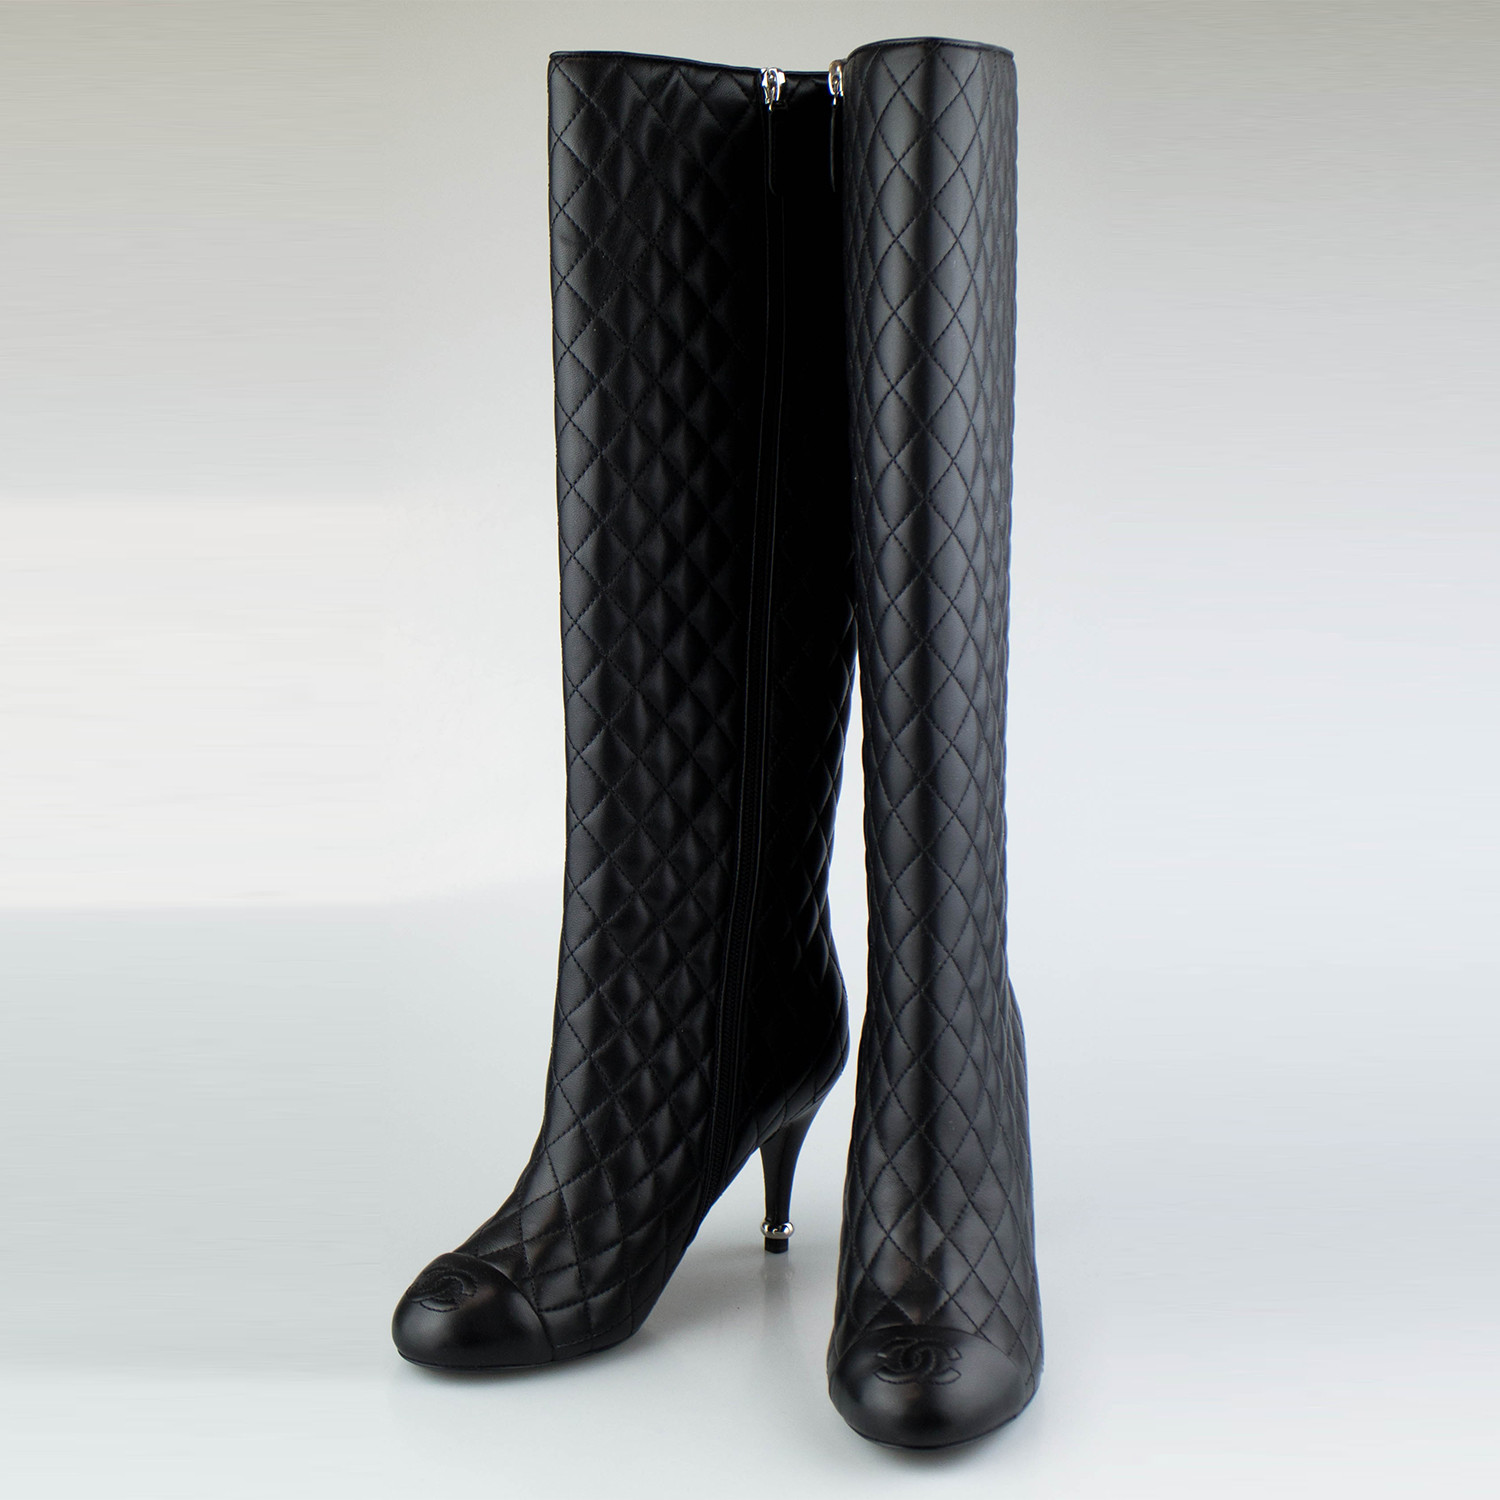 Chanel Quilted Leather Knee High Boots Black Euro 355 The